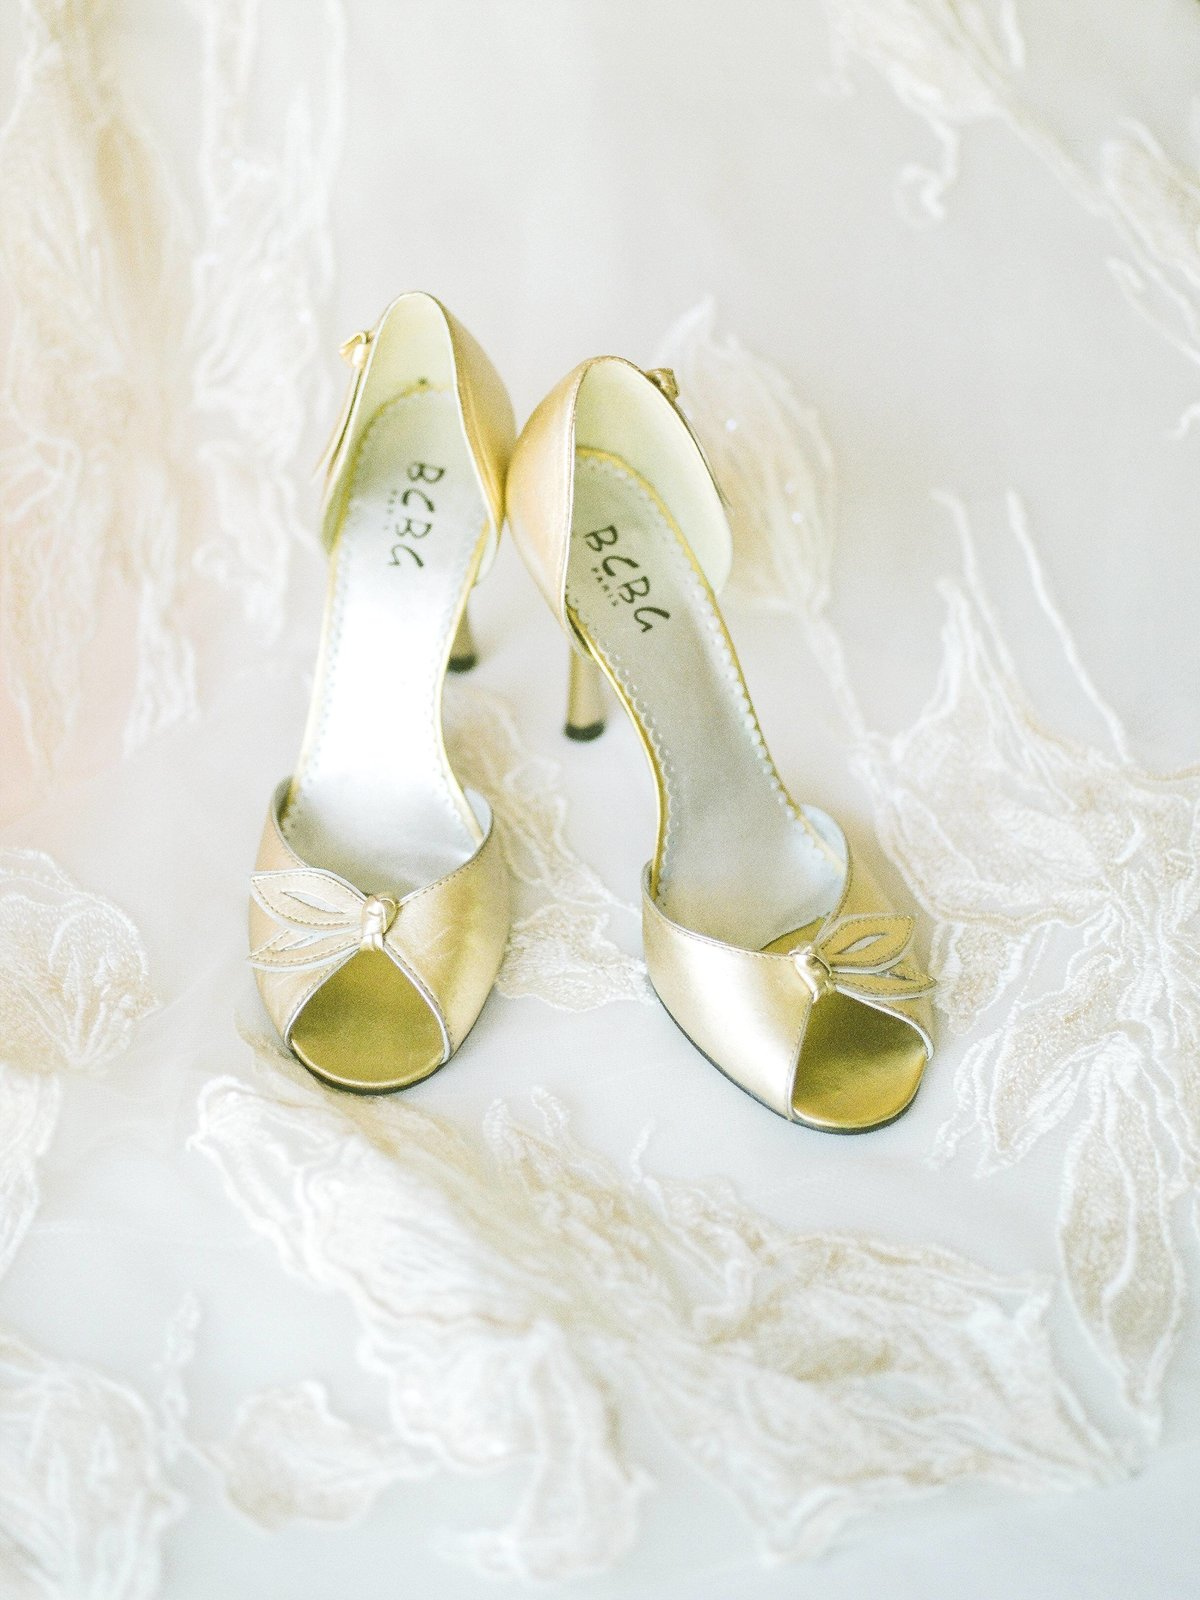 Bridal Shoes Getting Ready